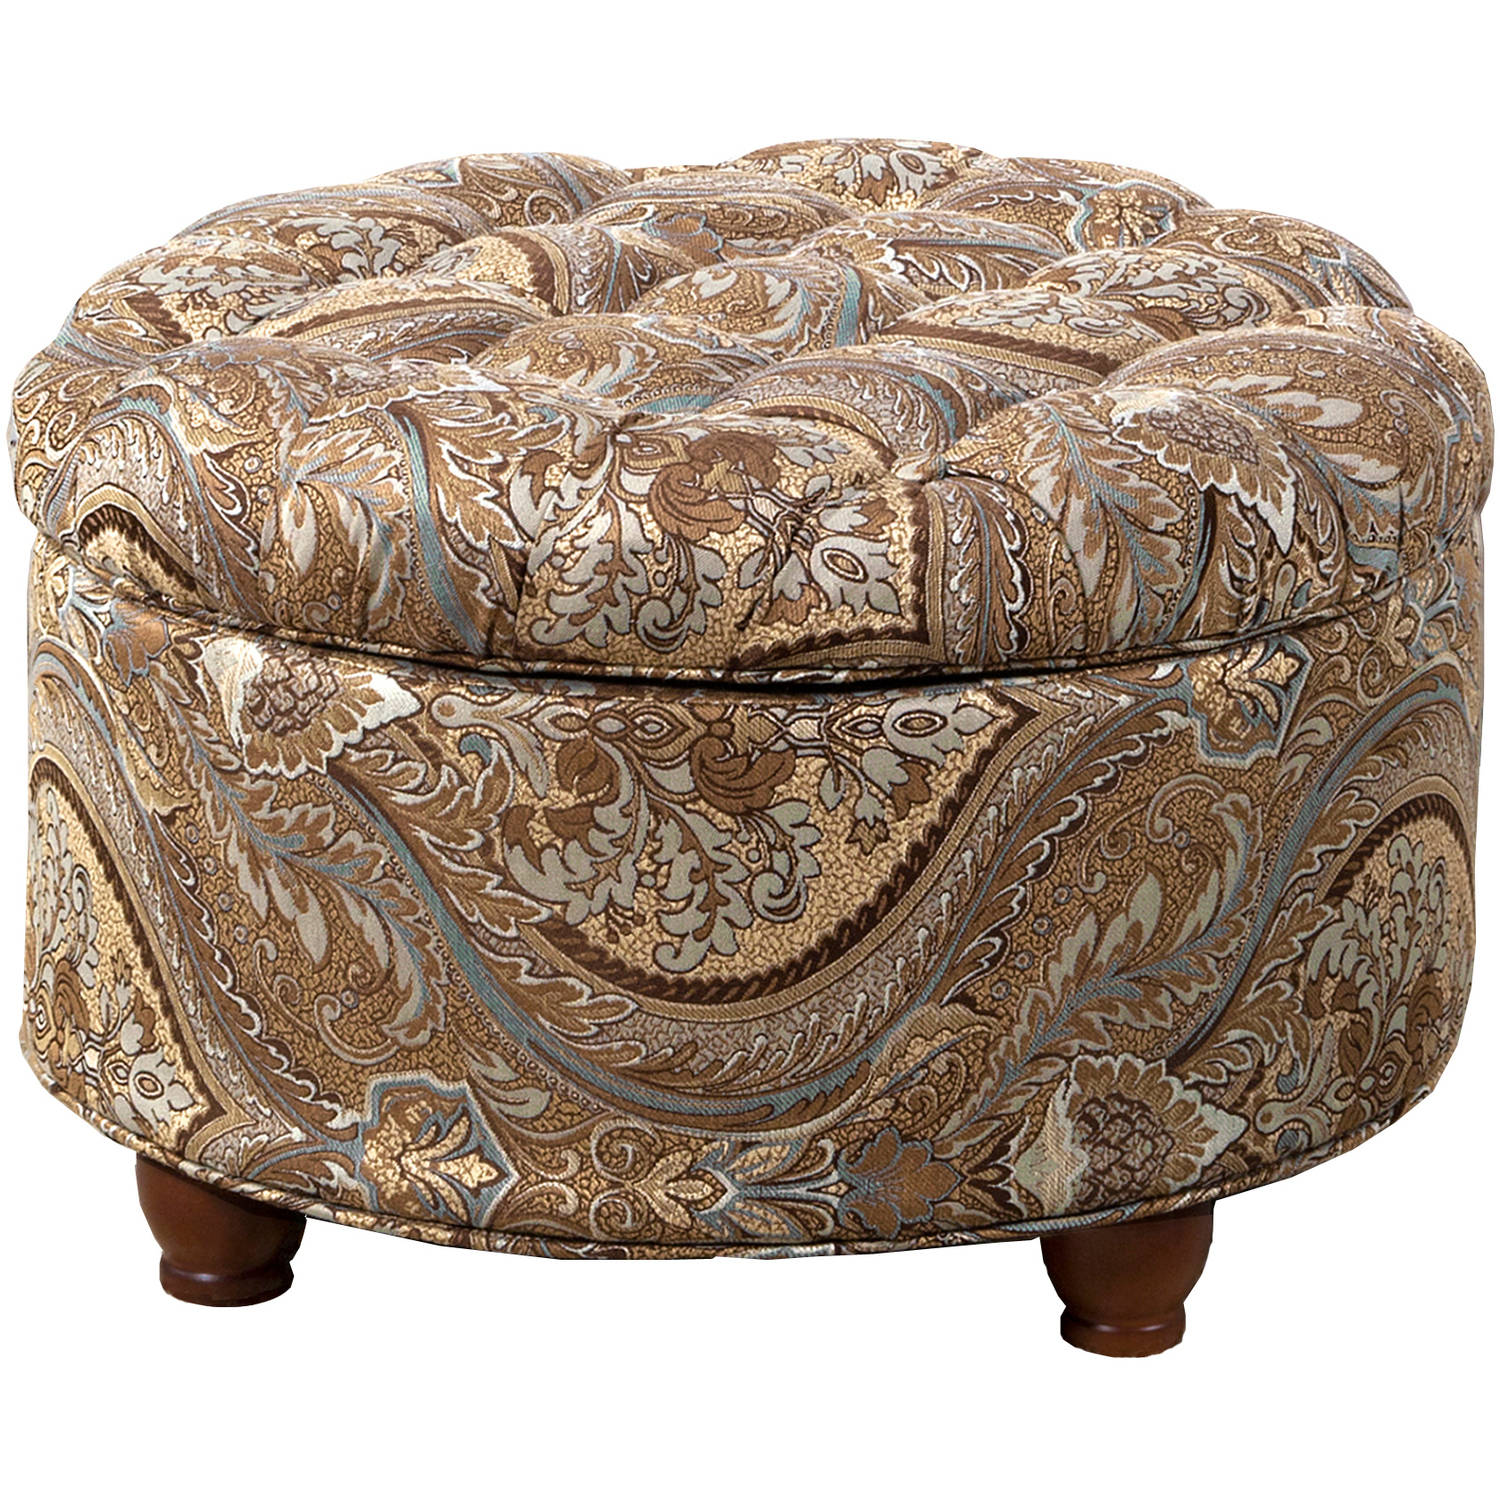 HomePop Button Tufted Round Storage Ottoman, Multiple Colors